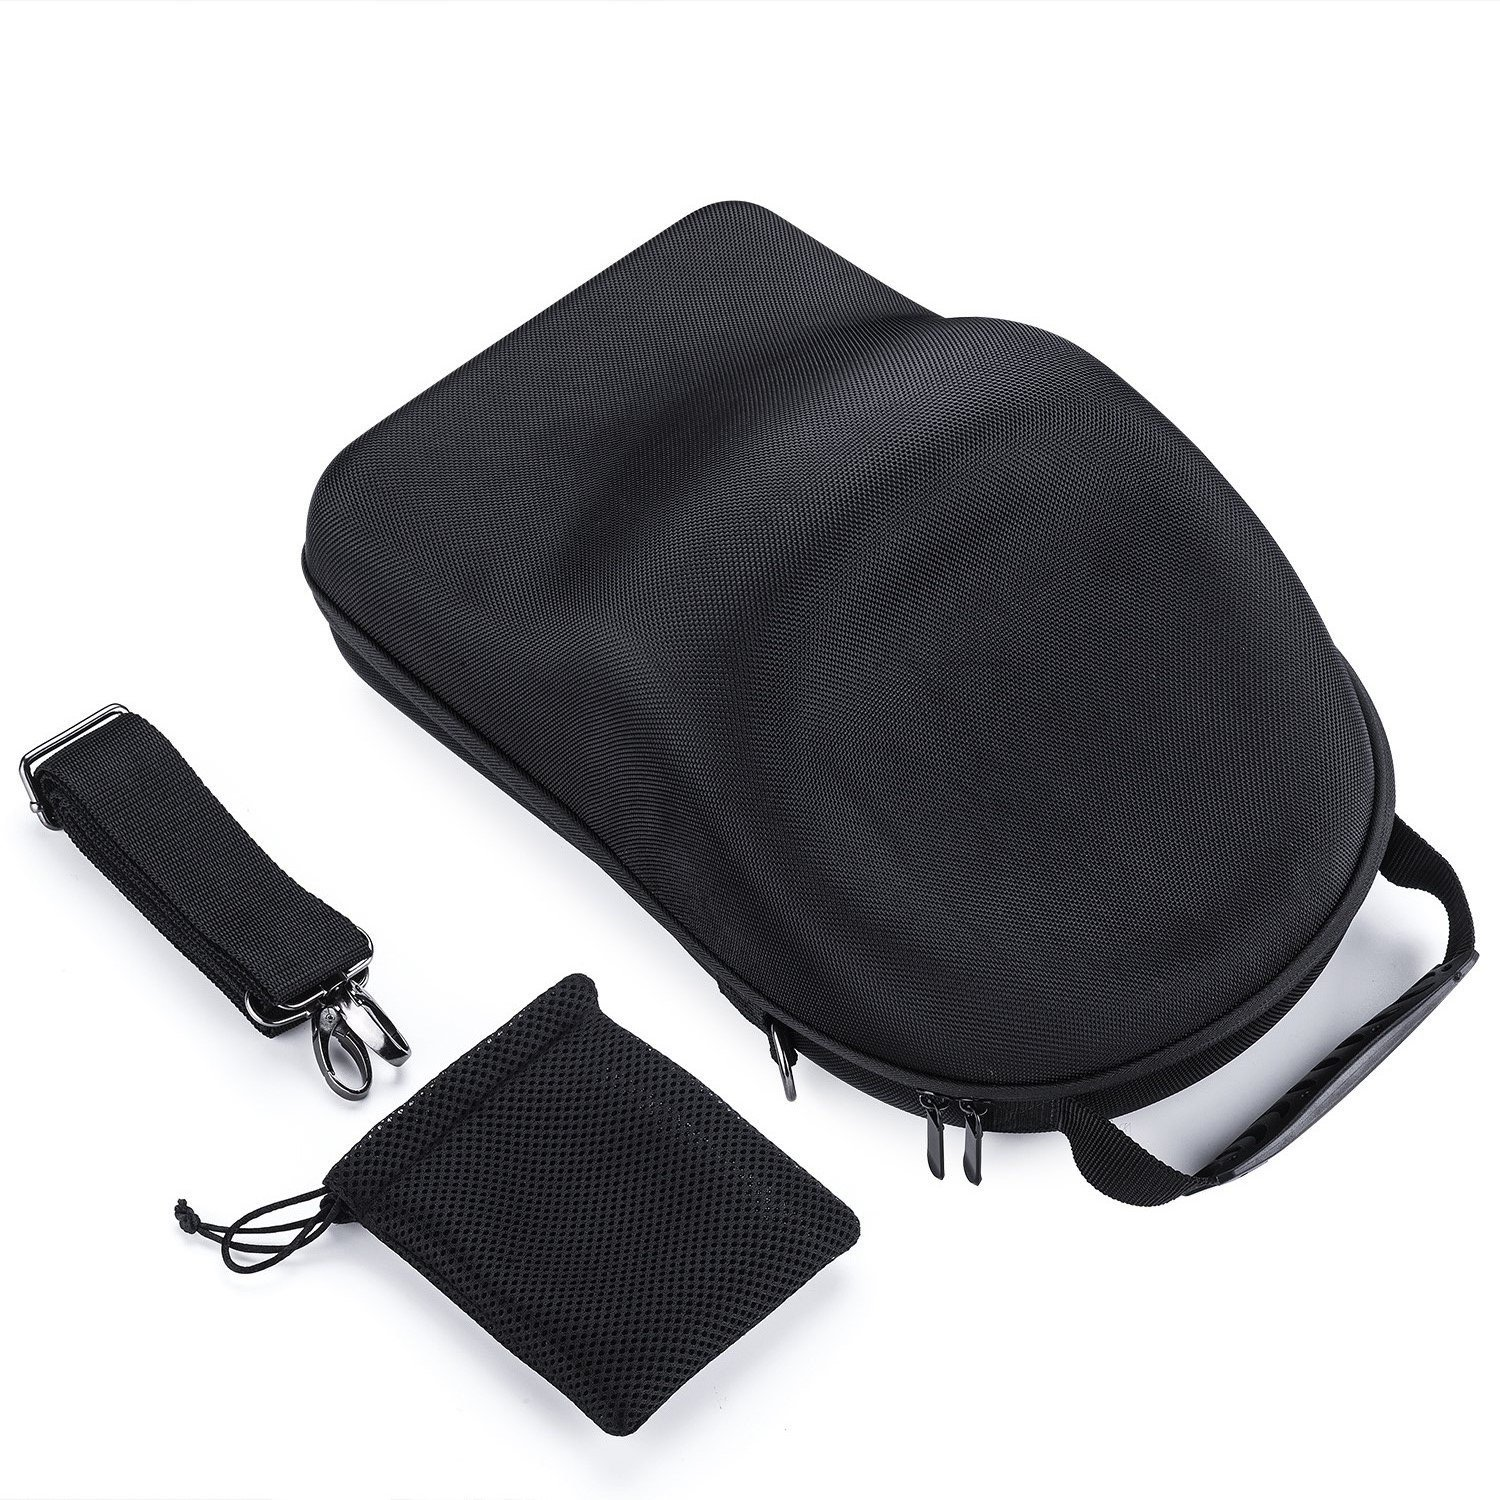 PENIVO Nylon Carrying Case Hardshell Housing Bag for VR Glasses Waterproof Shoulder bag Storage Box for DJI Goggles VR Glasses